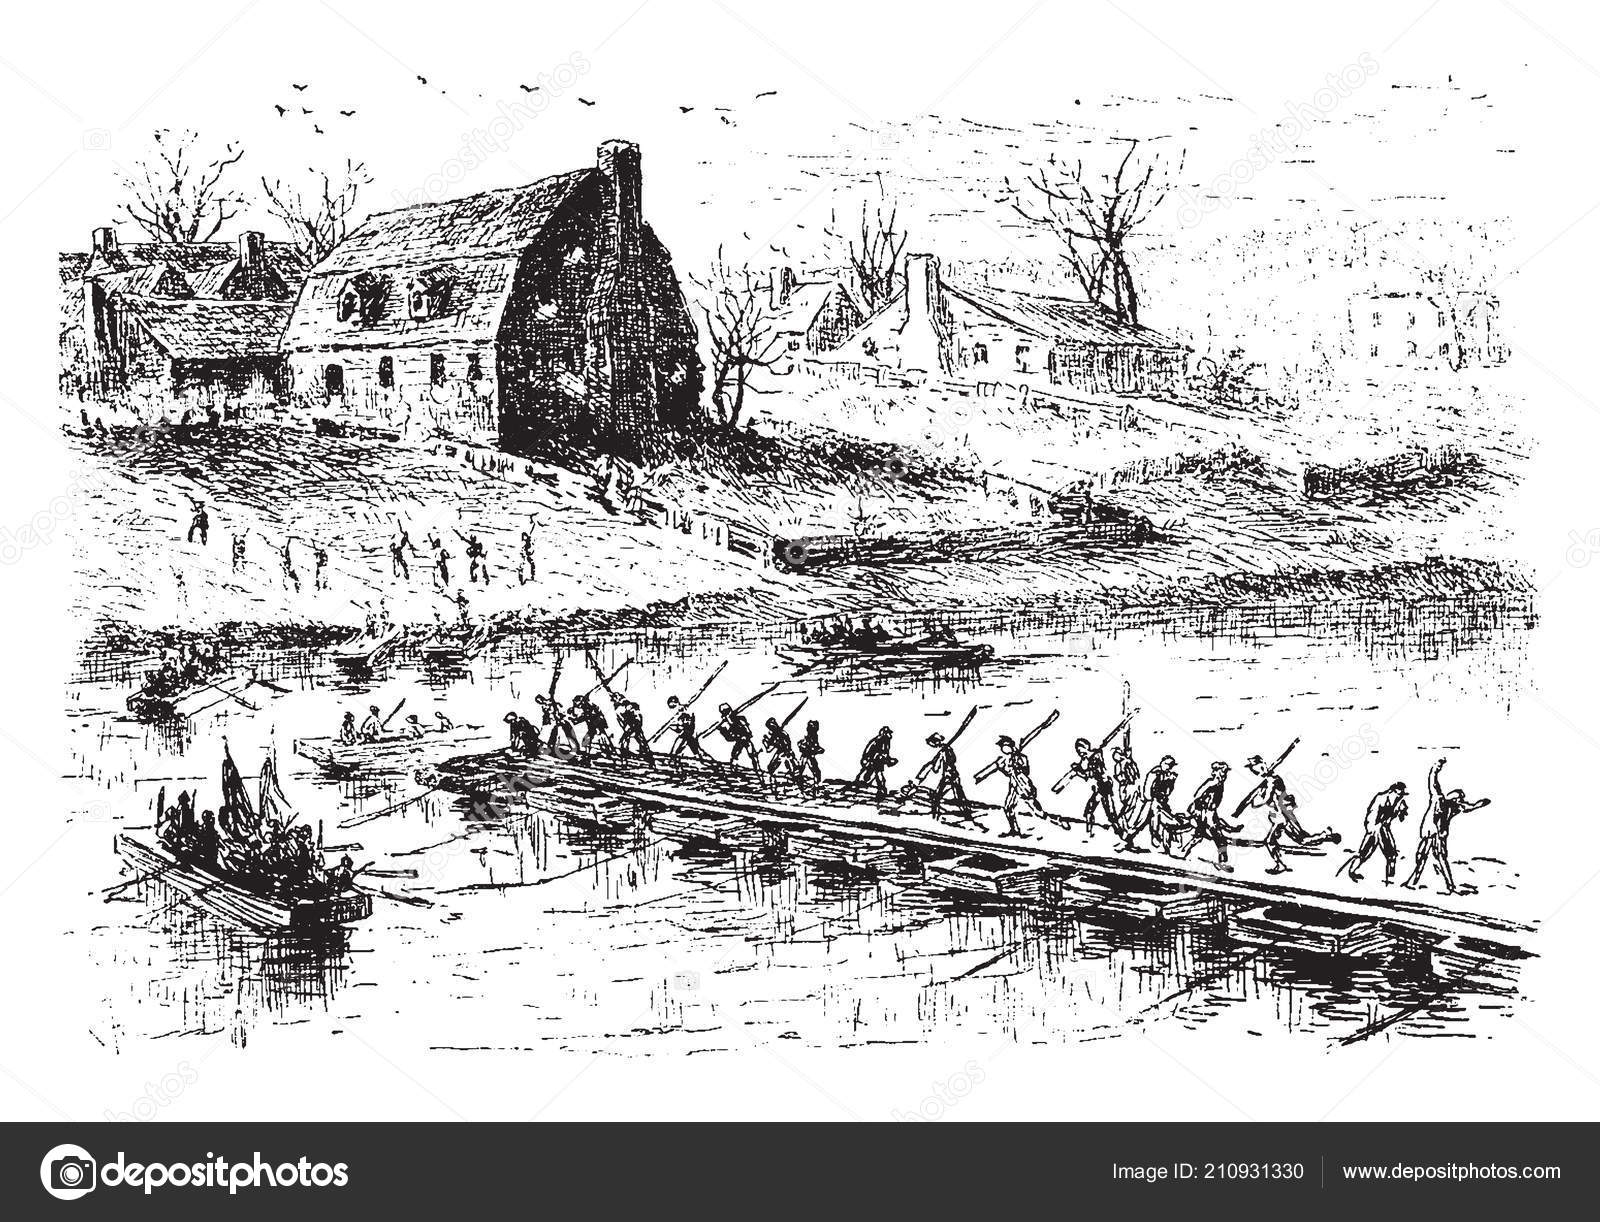 Pontoon Drawing Sylvan Boat Wiring Diagram Laying Soldiers Making Boats Coast Fredericksburg 1600x1222